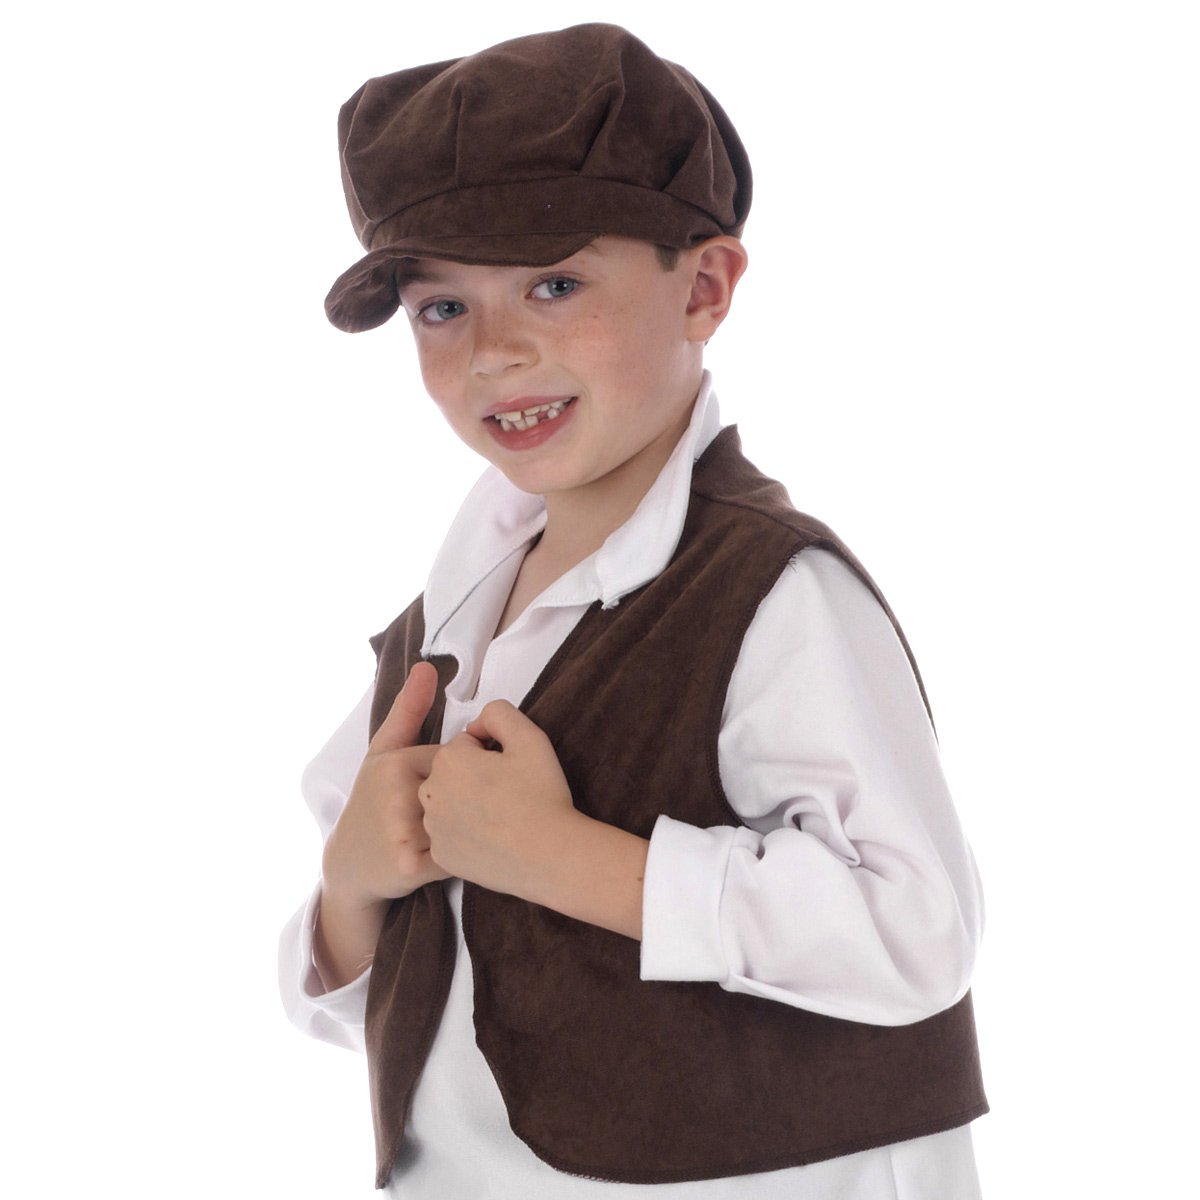 Victorian Kids Costumes & Shoes- Girls, Boys, Baby, Toddler Brown Flat Cap & Waistcoat for kids | One size fits all 3-9 years £8.50 AT vintagedancer.com